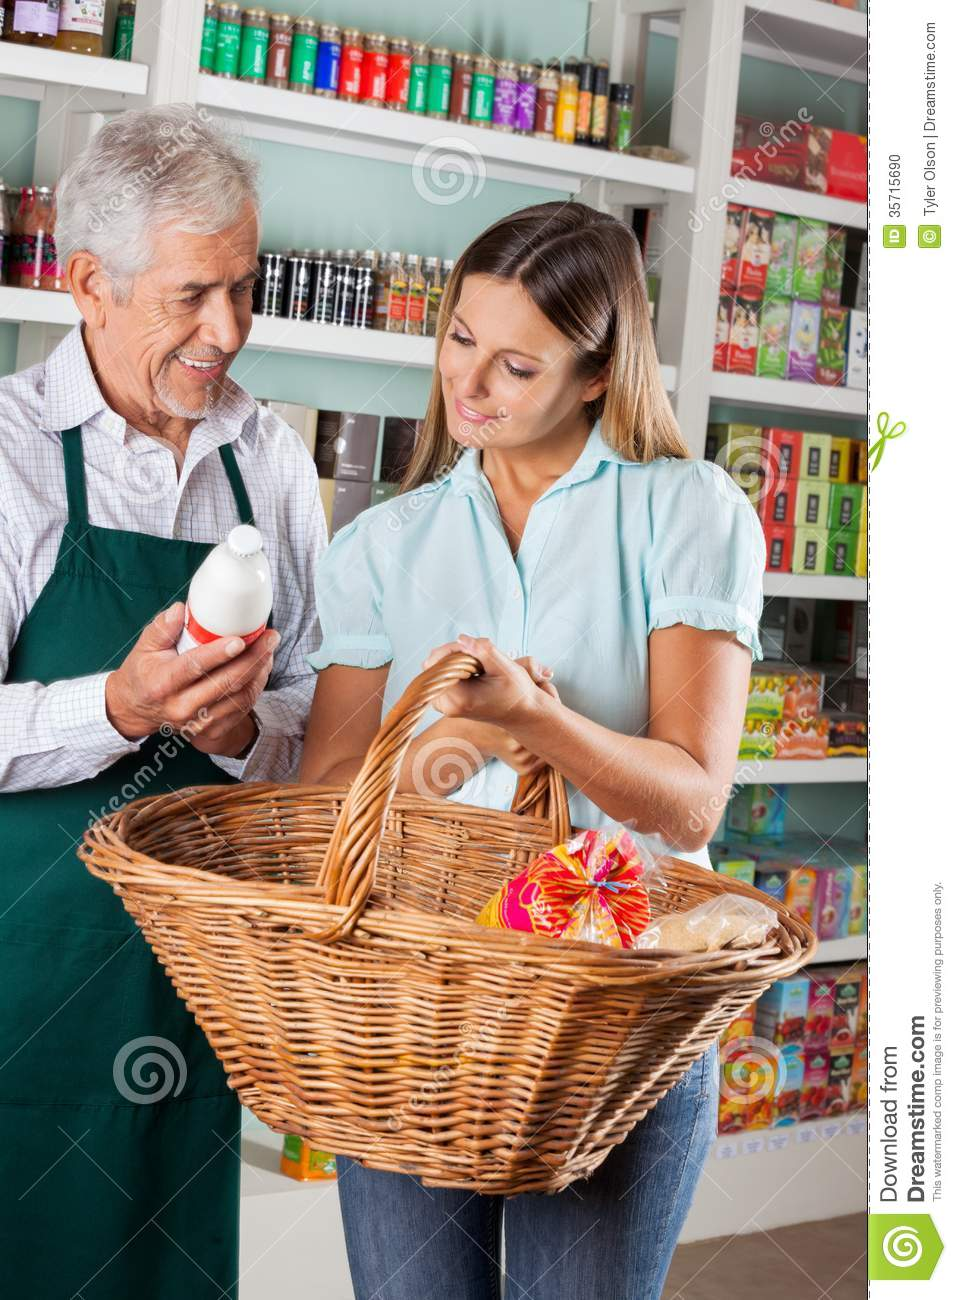 Buying A Full Face Snorkel Mask Reviews Of Full Face: Salesman Assisting Customer Buying Groceries Stock Photo